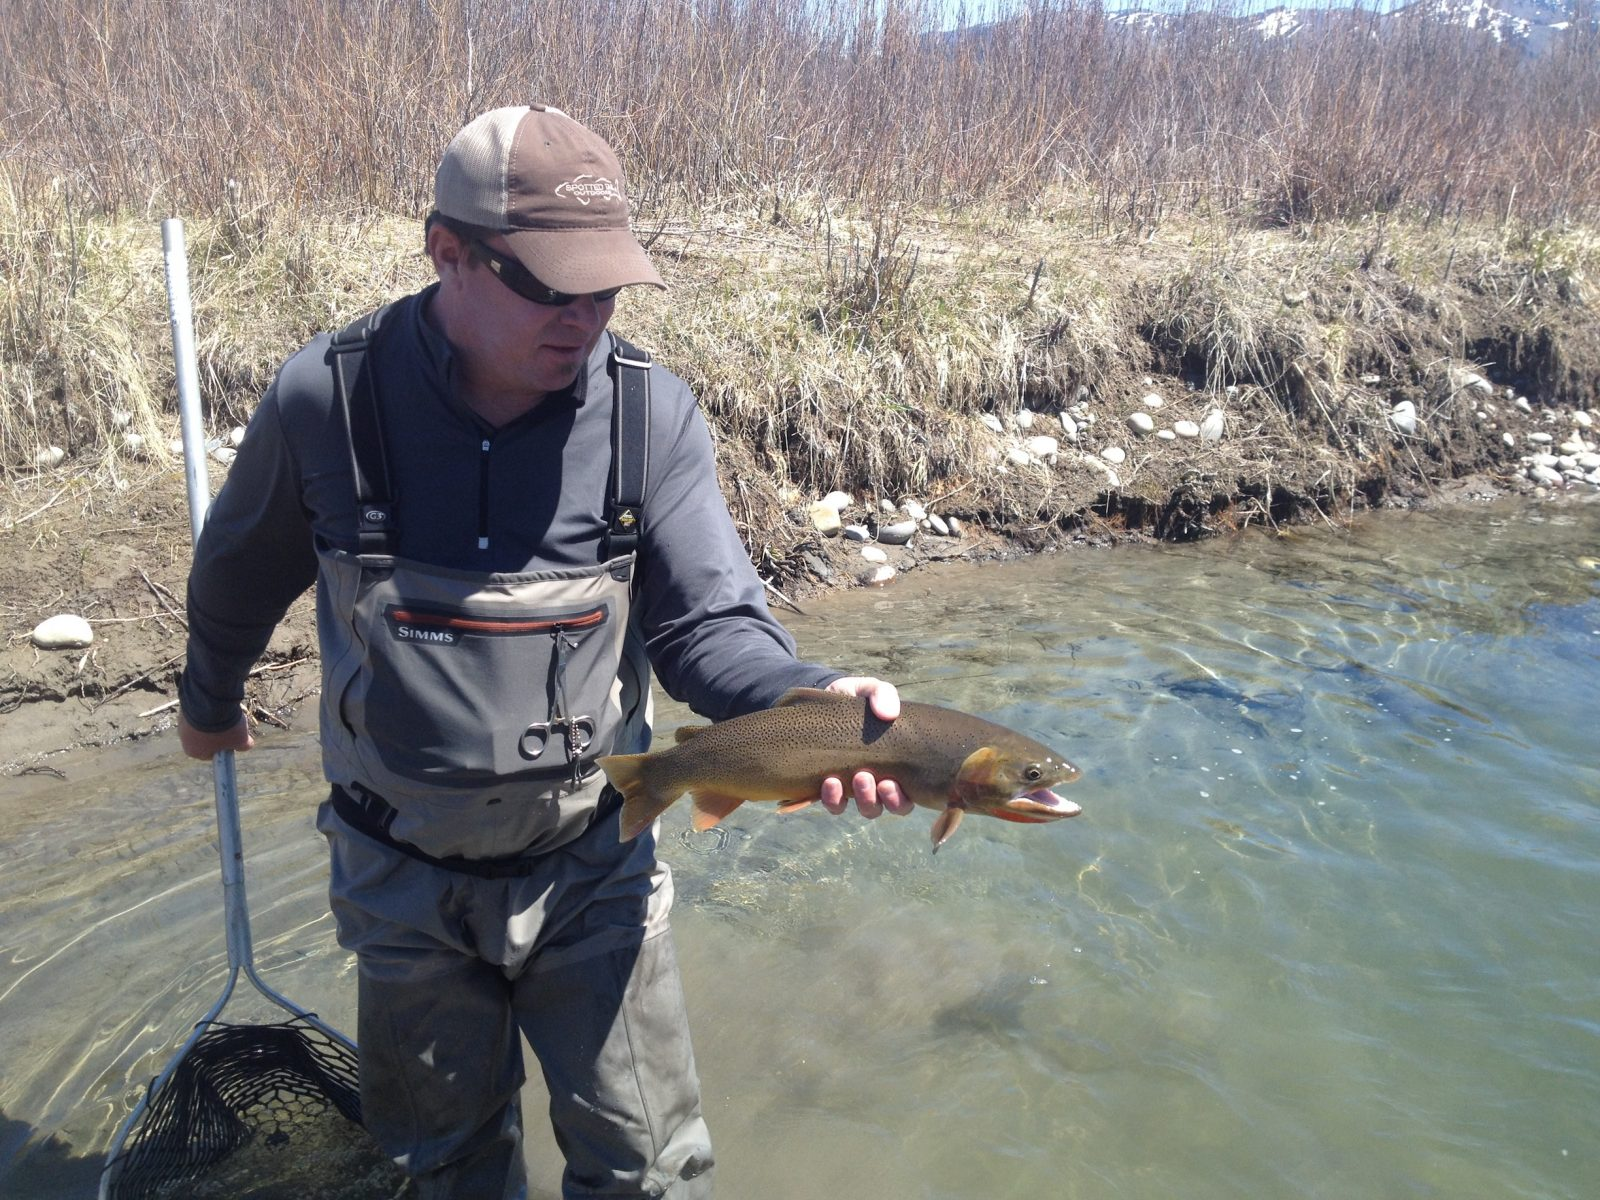 Snake river fishing report 3 reel deal anglers for Jackson hole fly fishing